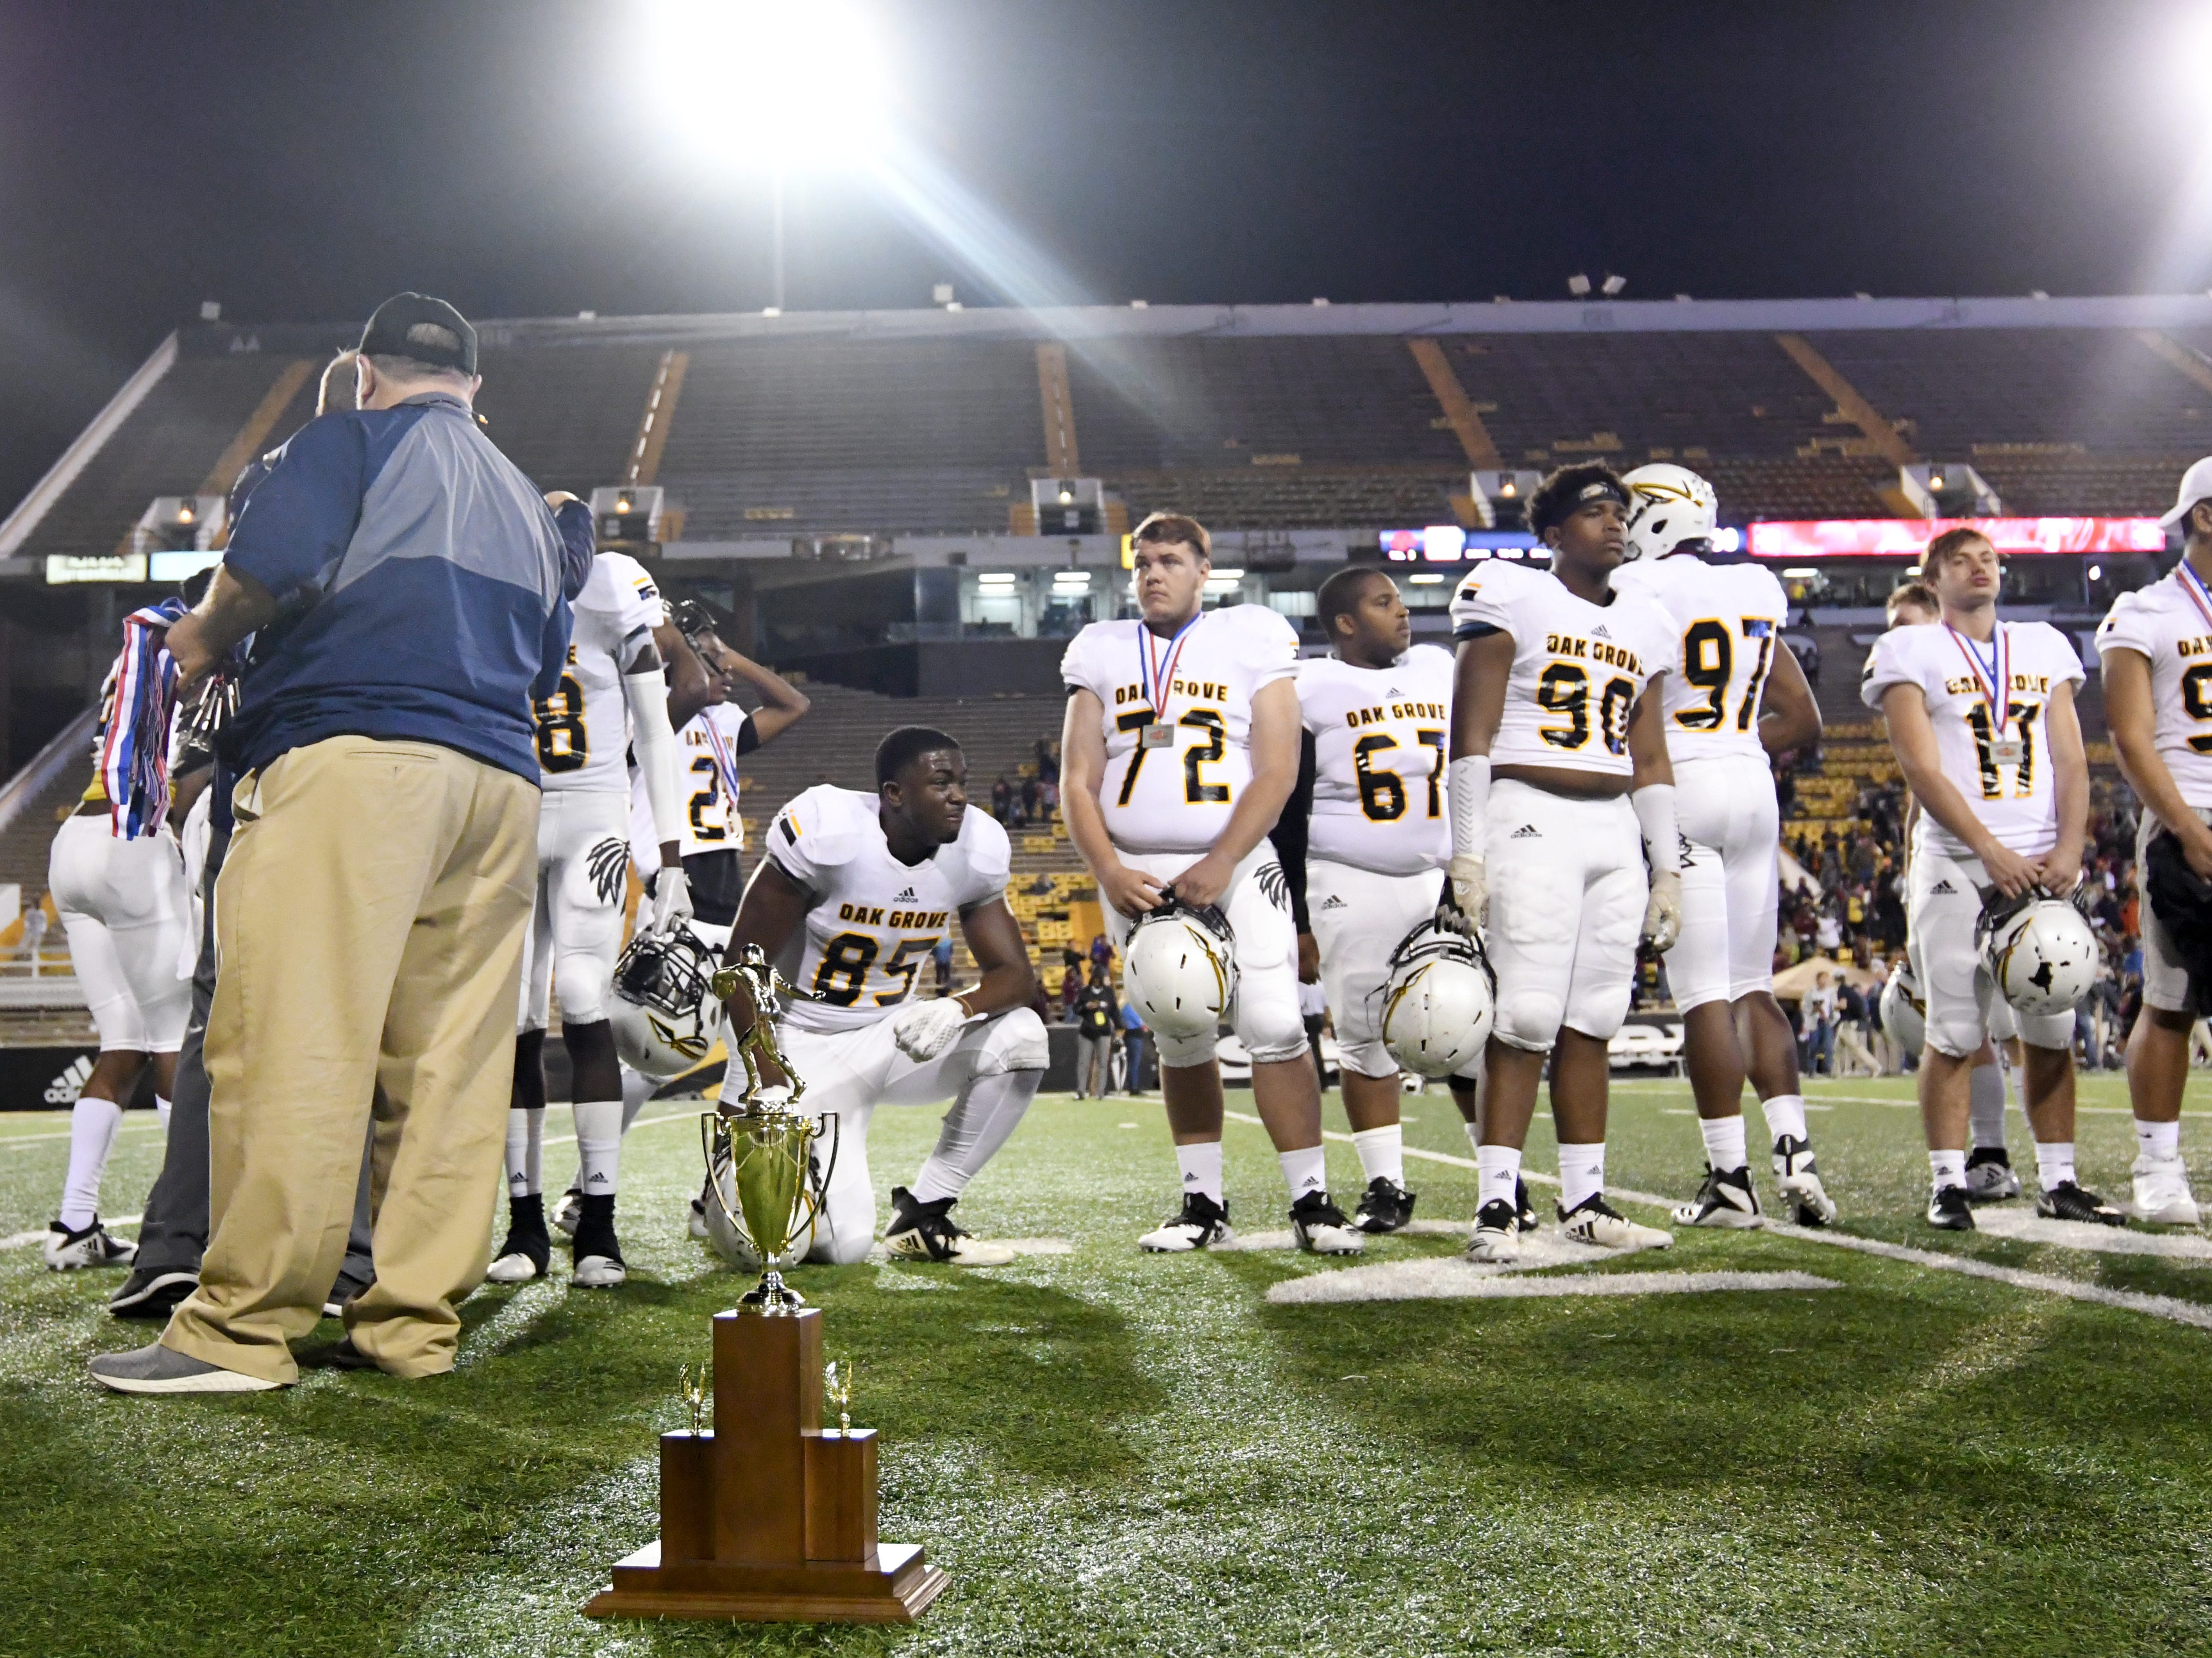 Oak Grove players show emotion as they lose to Horn Lake in the 6A state championship game at M.M. Roberts Stadium in Hattiesburg on Friday, November 30, 2018.